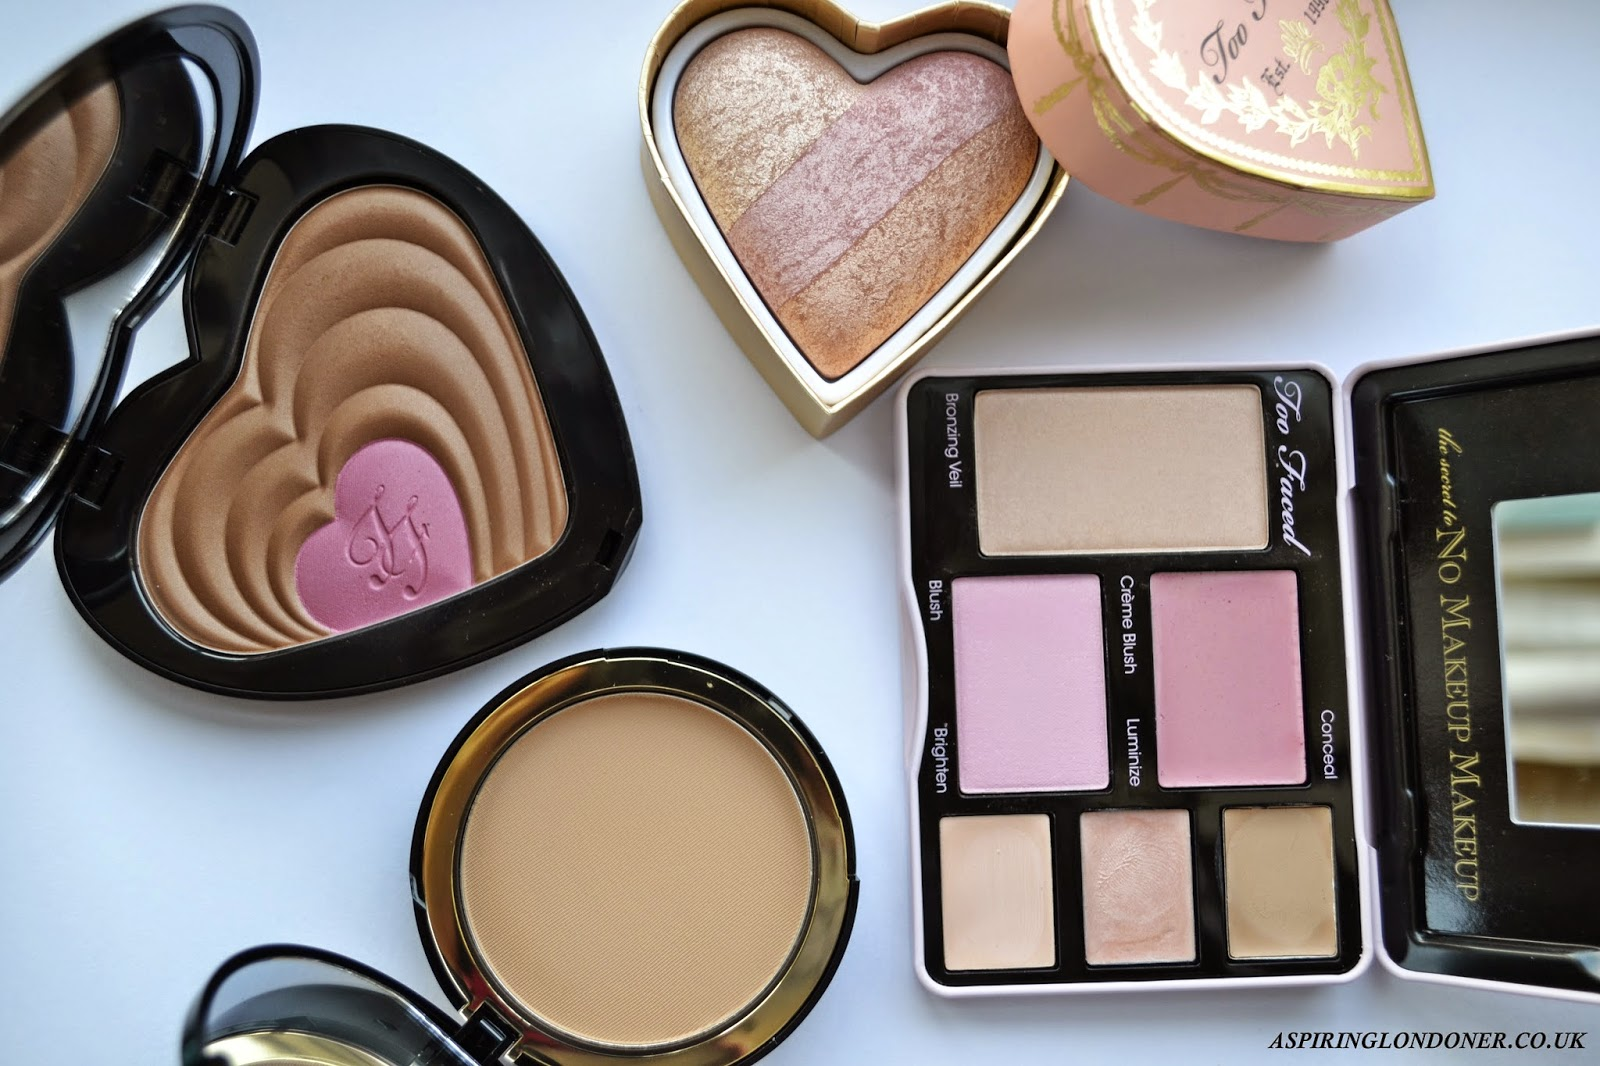 Best Of Too Faced Cosmetics Face Makeup Review - Aspiring Londoner